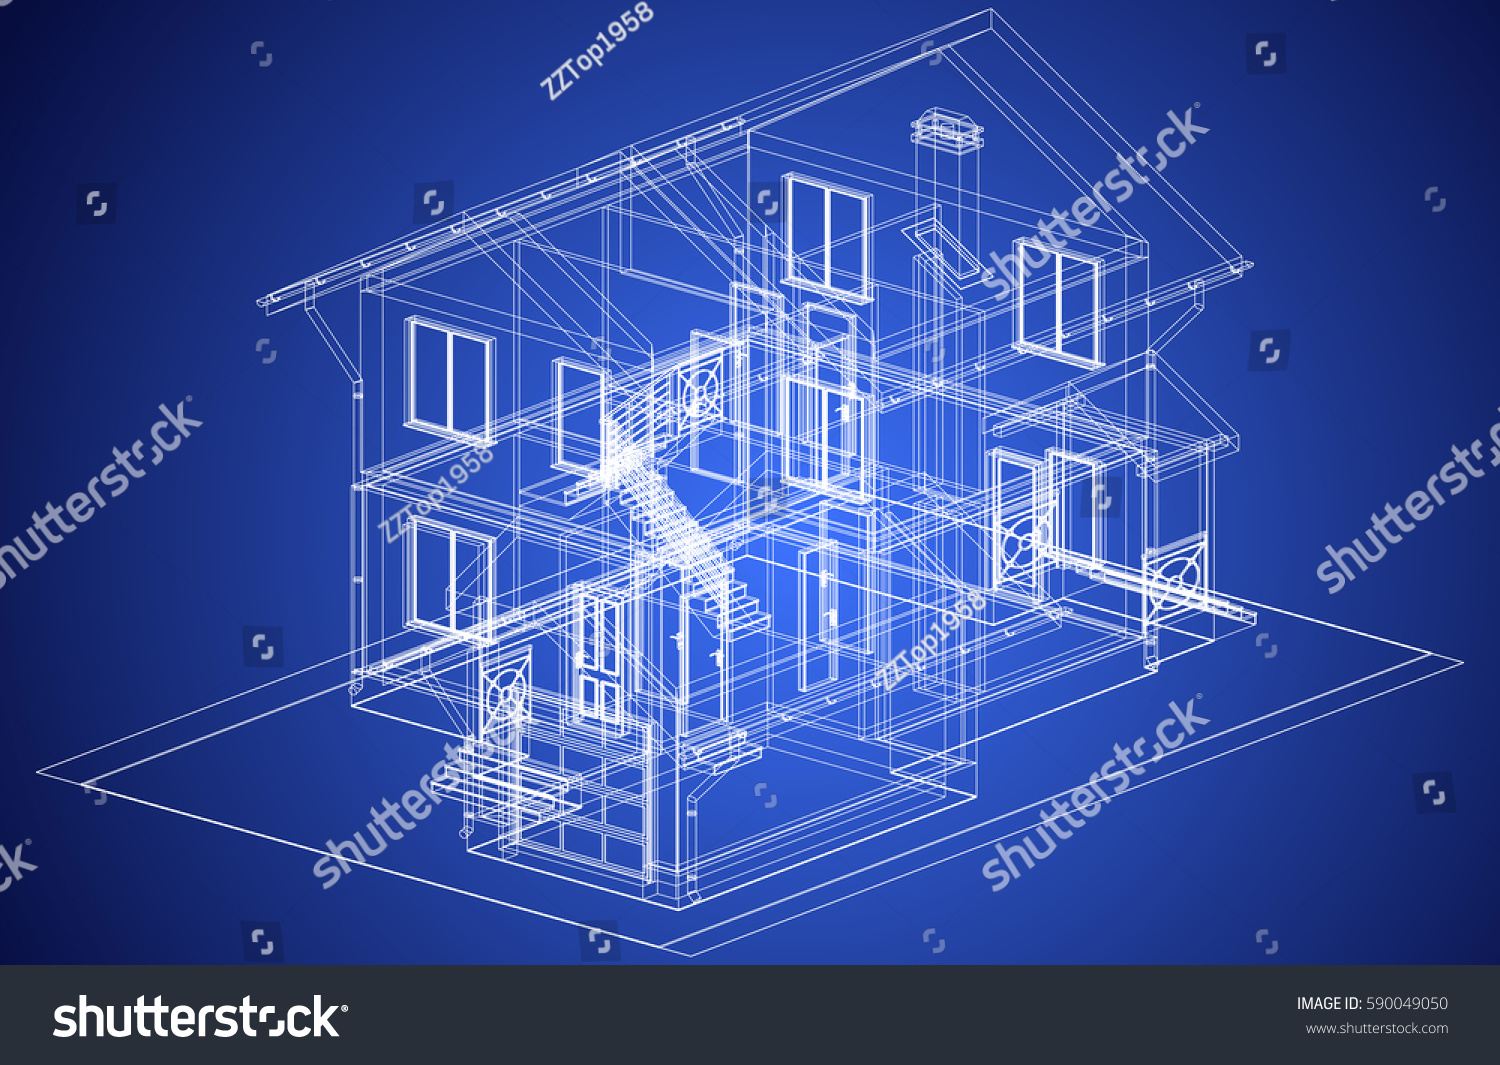 Blueprint architectural design halftimbered residential house vector the blueprint of architectural design of half timbered residential house with the terrace vector malvernweather Images